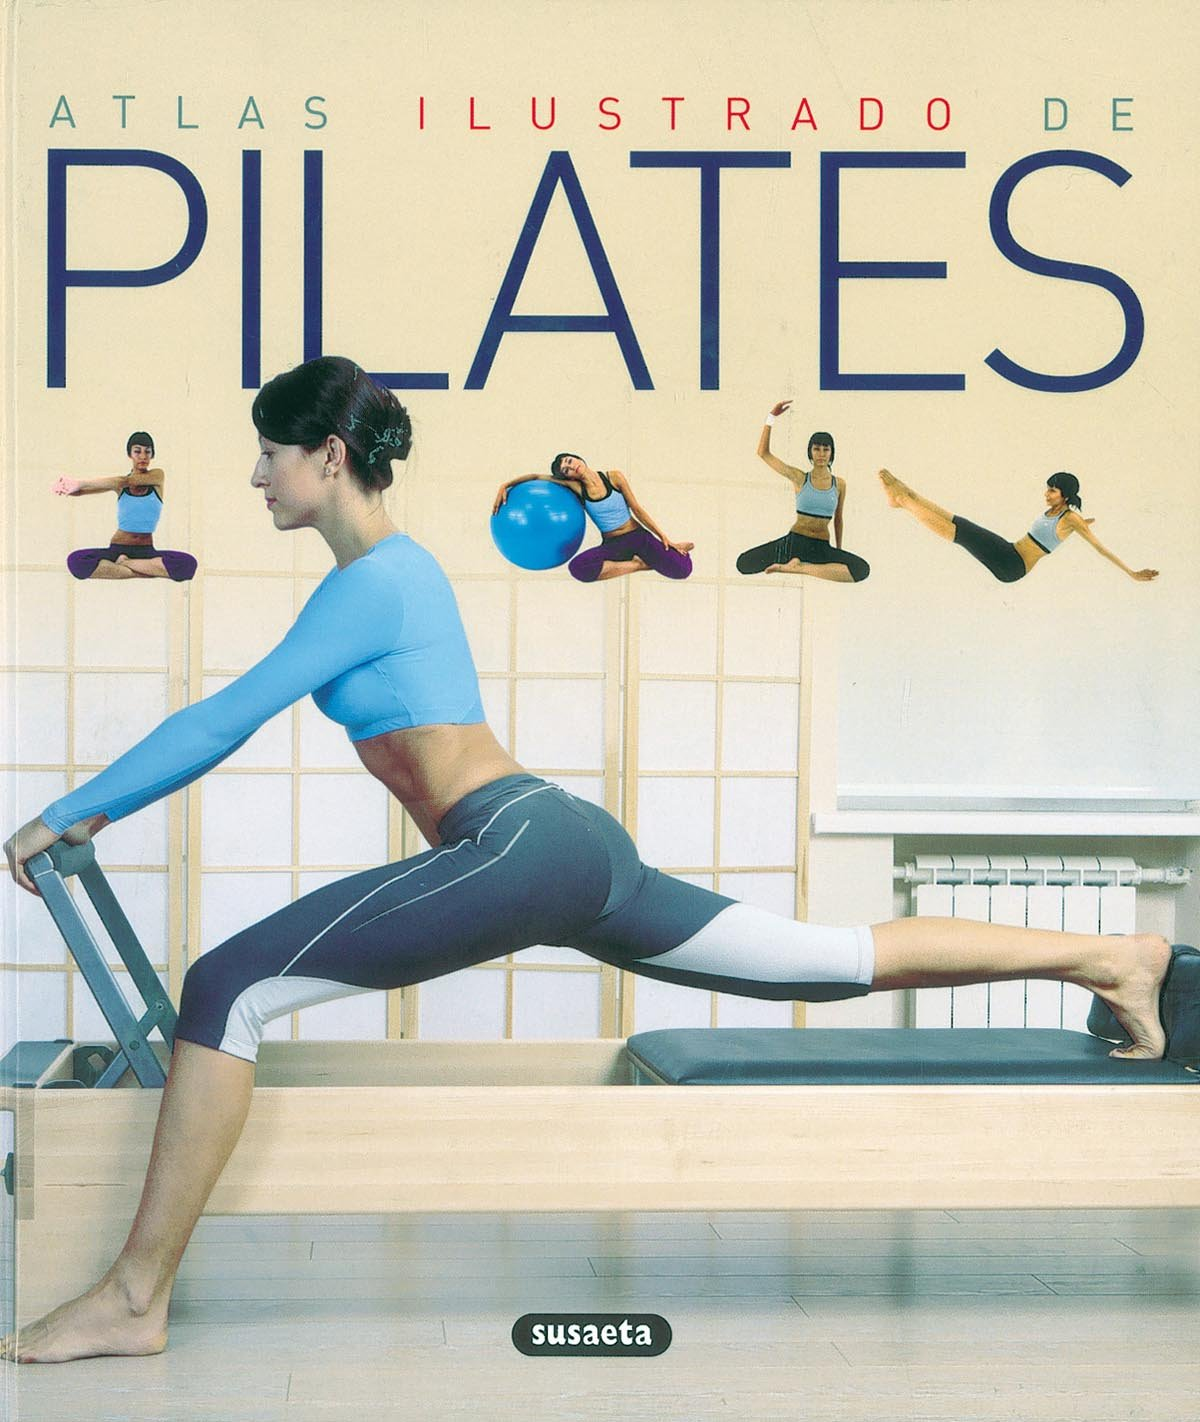 Atlas ilustrado de pilates: S-851-81: 9788430570331: Amazon ...